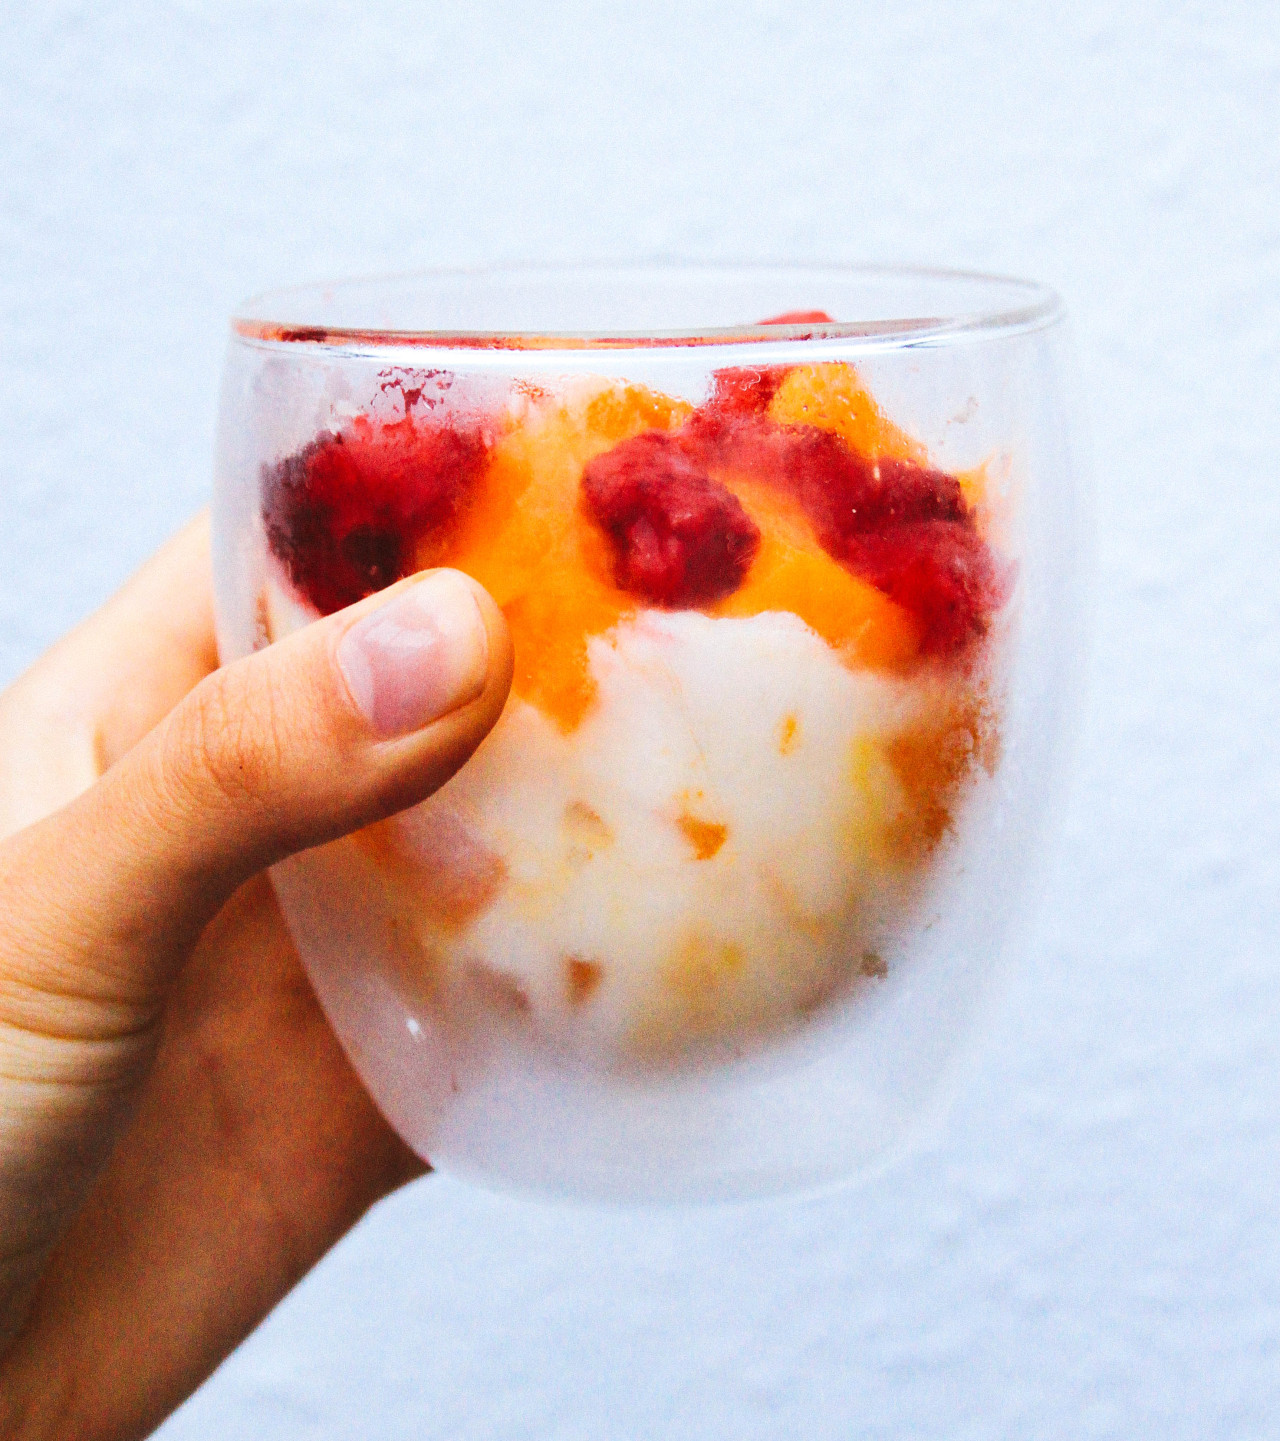 The perfect breakfast frozen yogurt